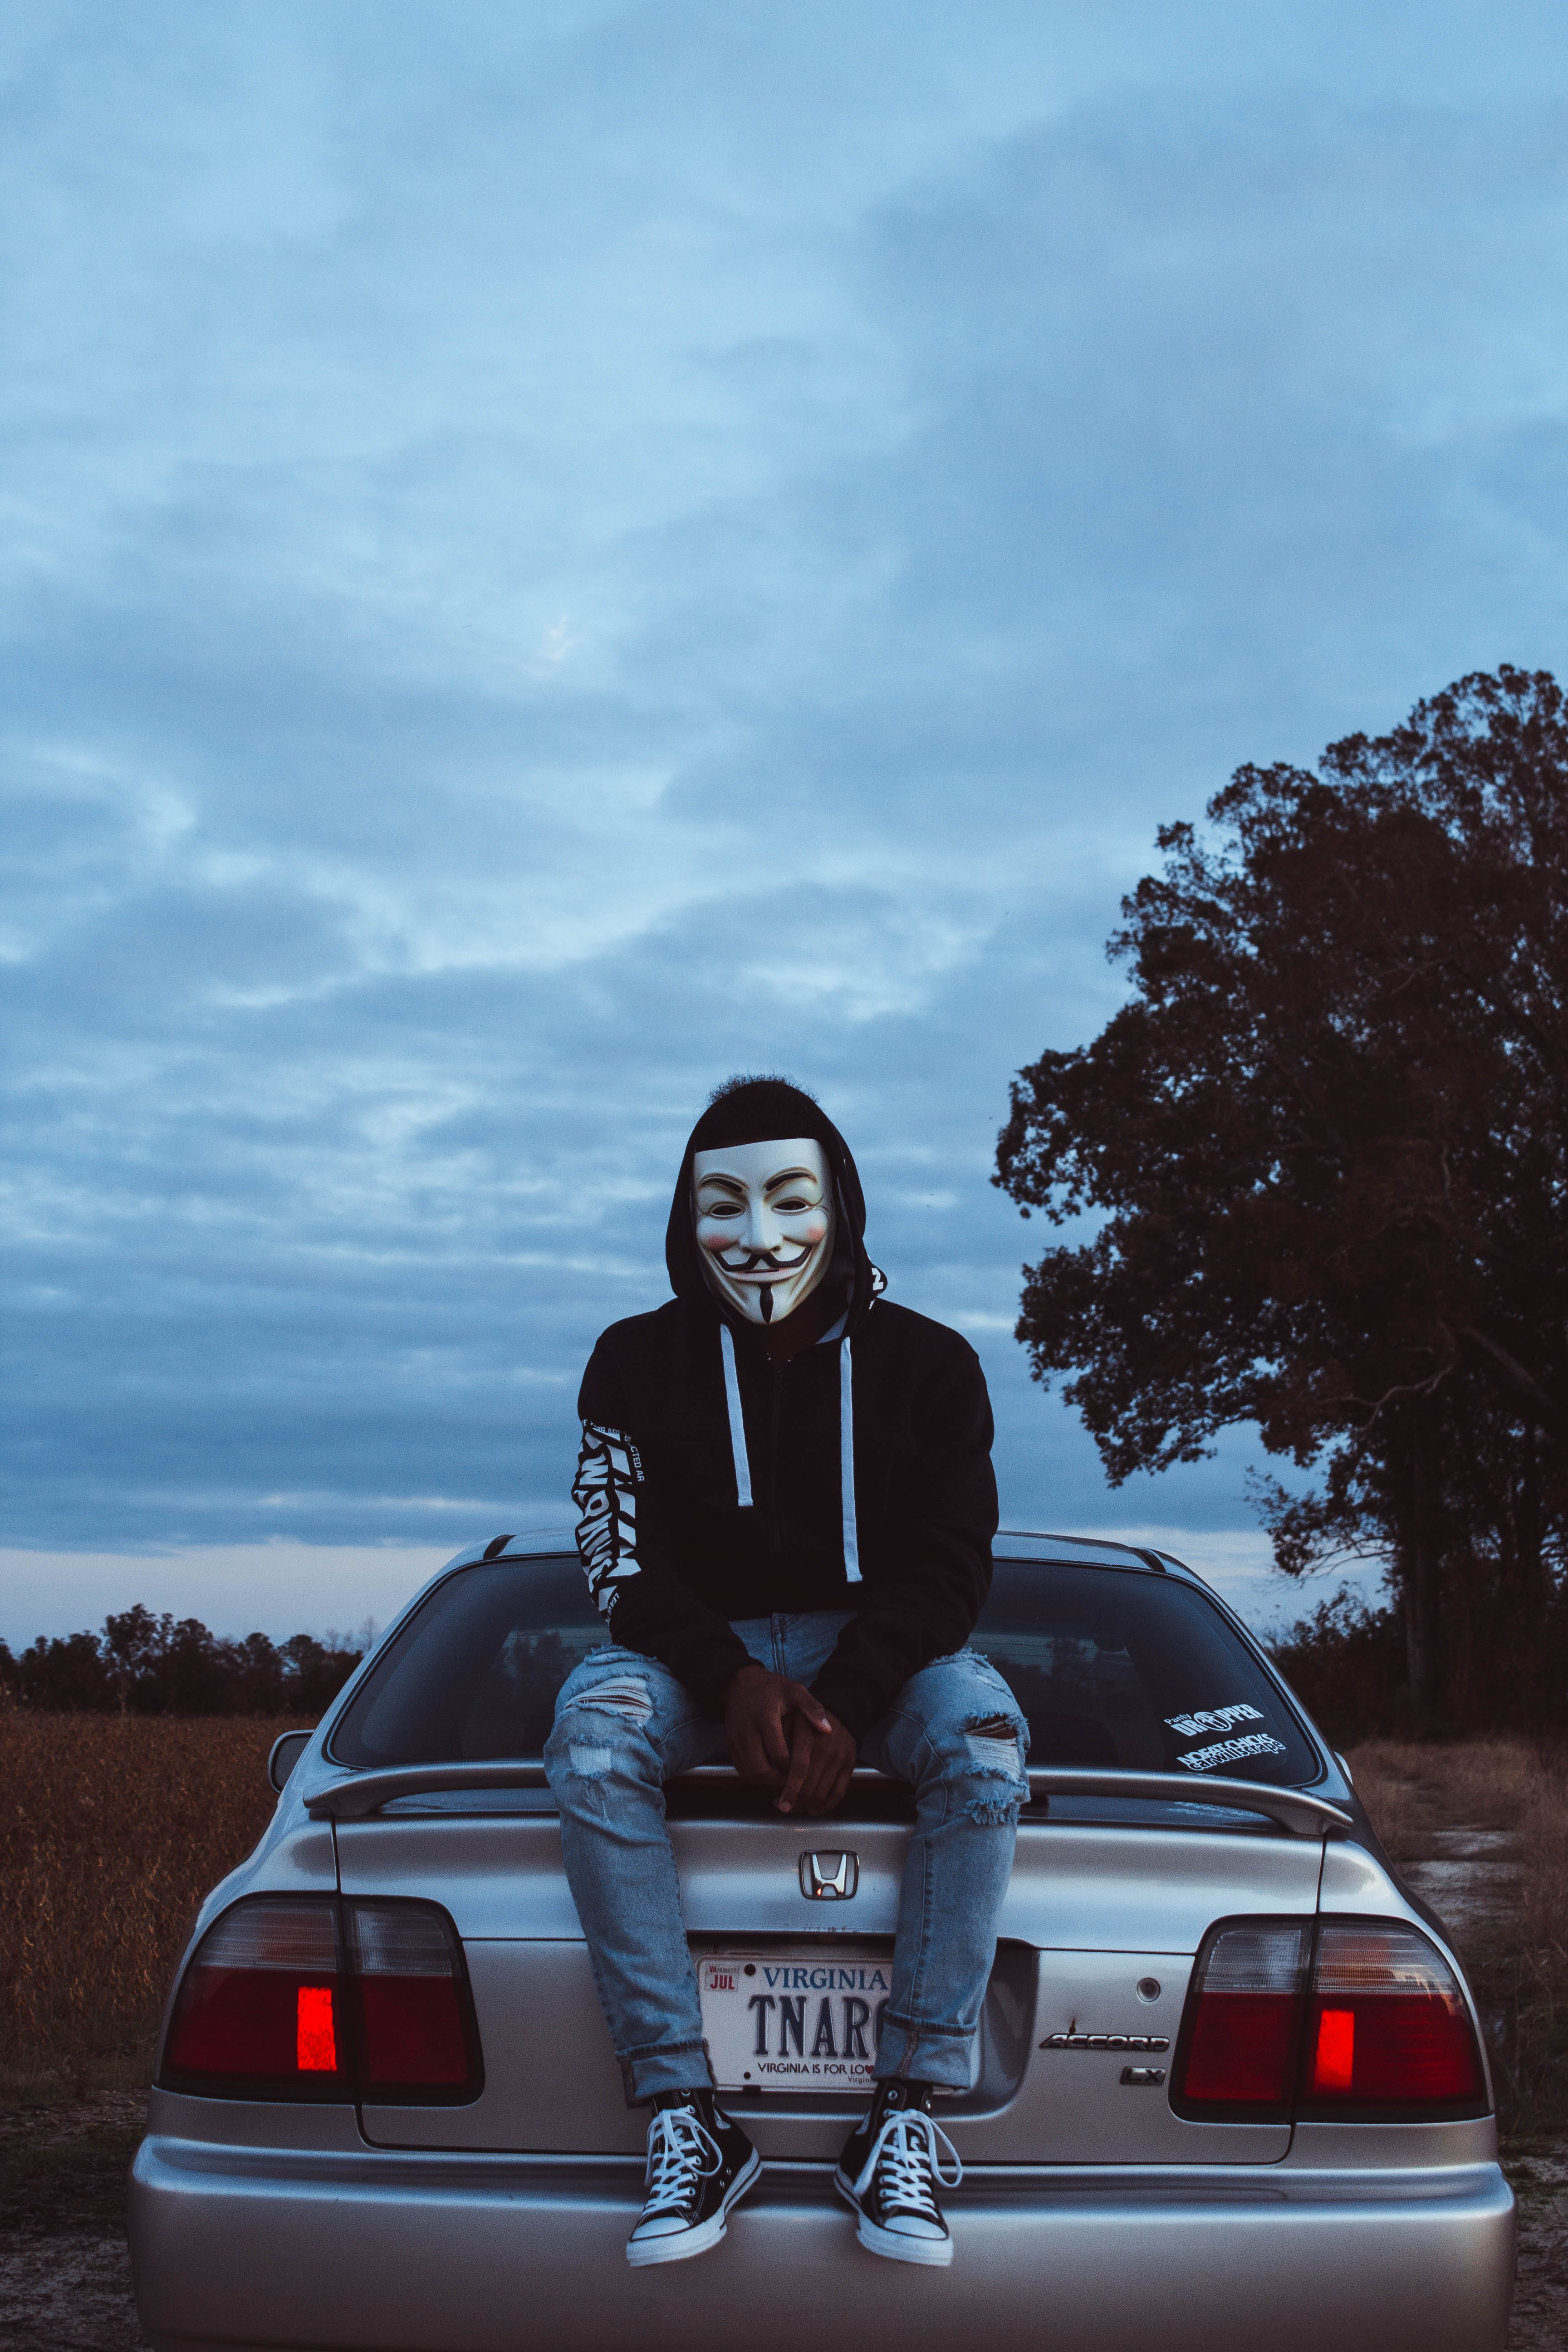 Man Wearing Guy Fawkes Mask While Sitting on Silver Honda Civic